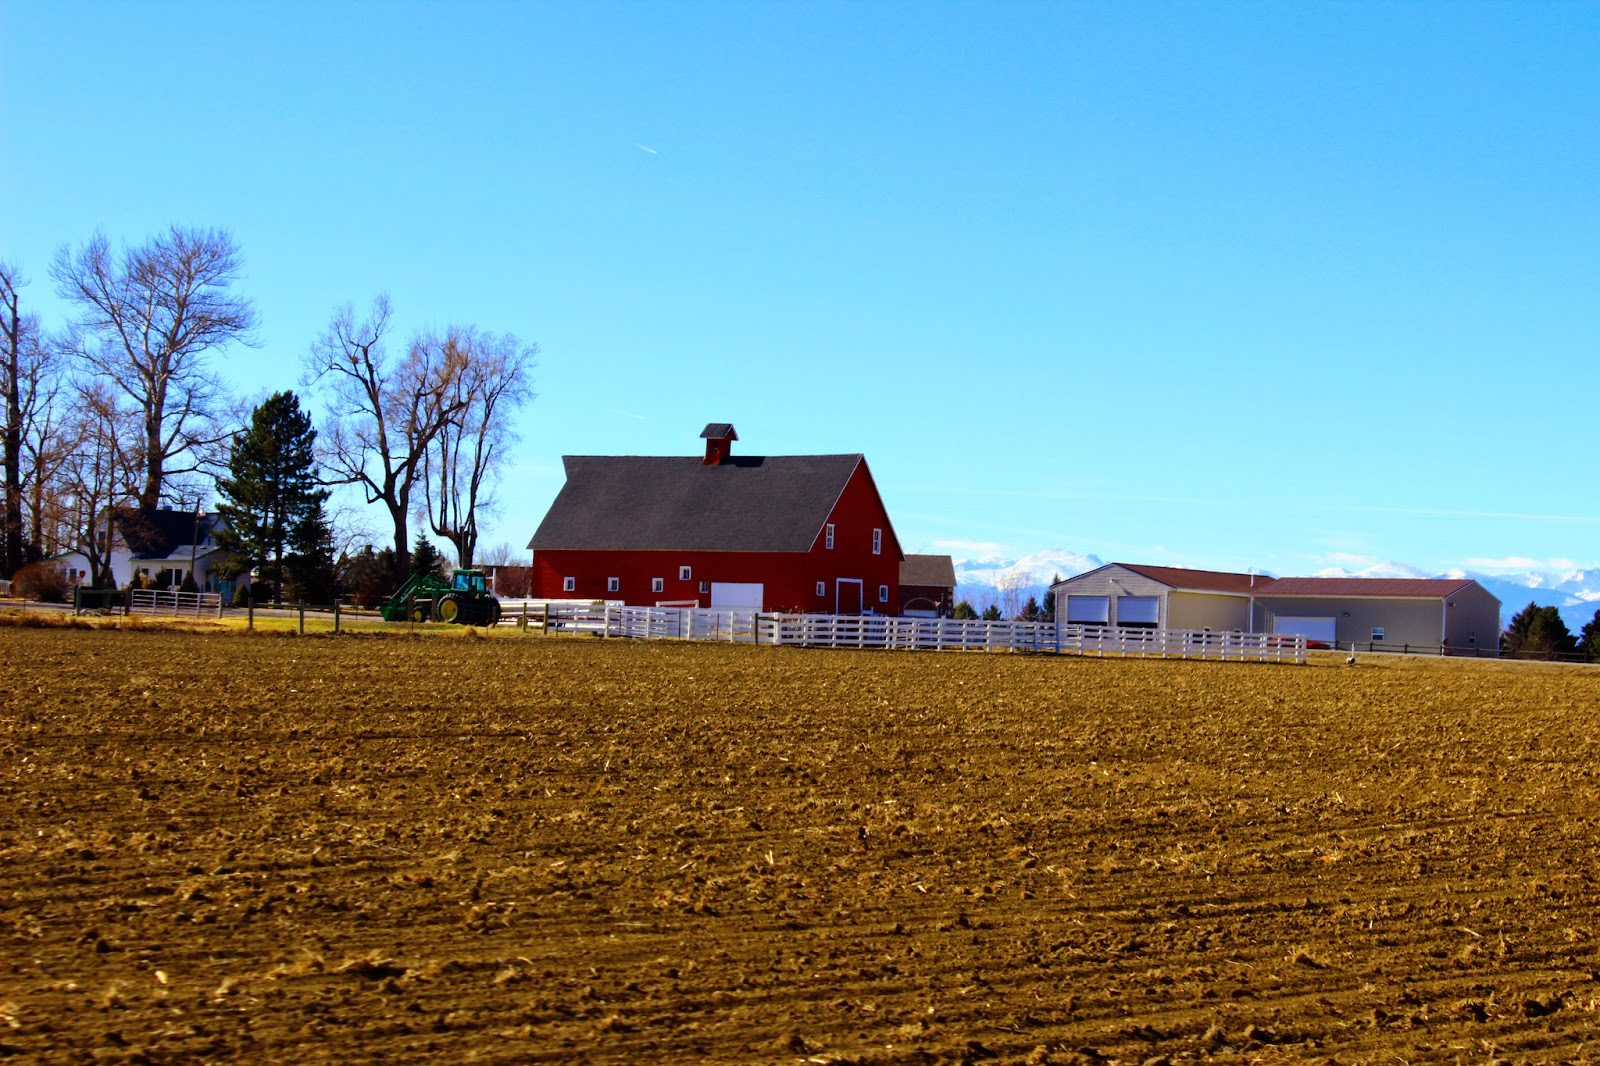 a big red barn sits next to some plowed farmland